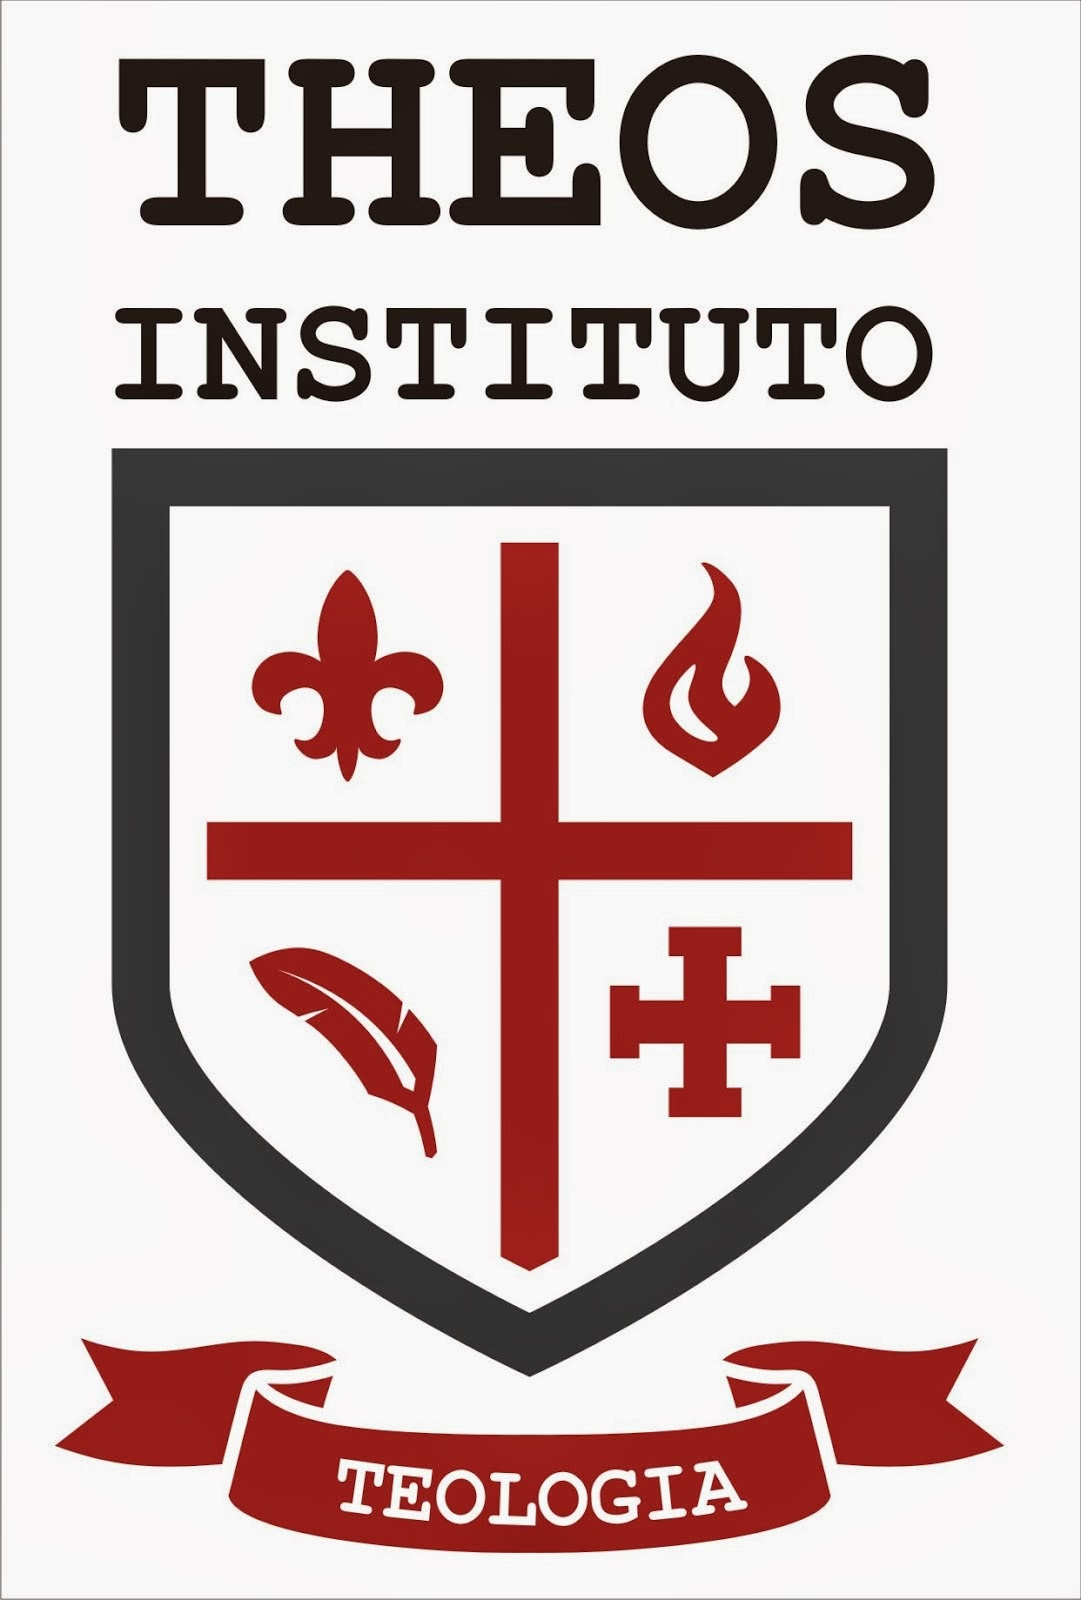 Instituto Teológico Theos